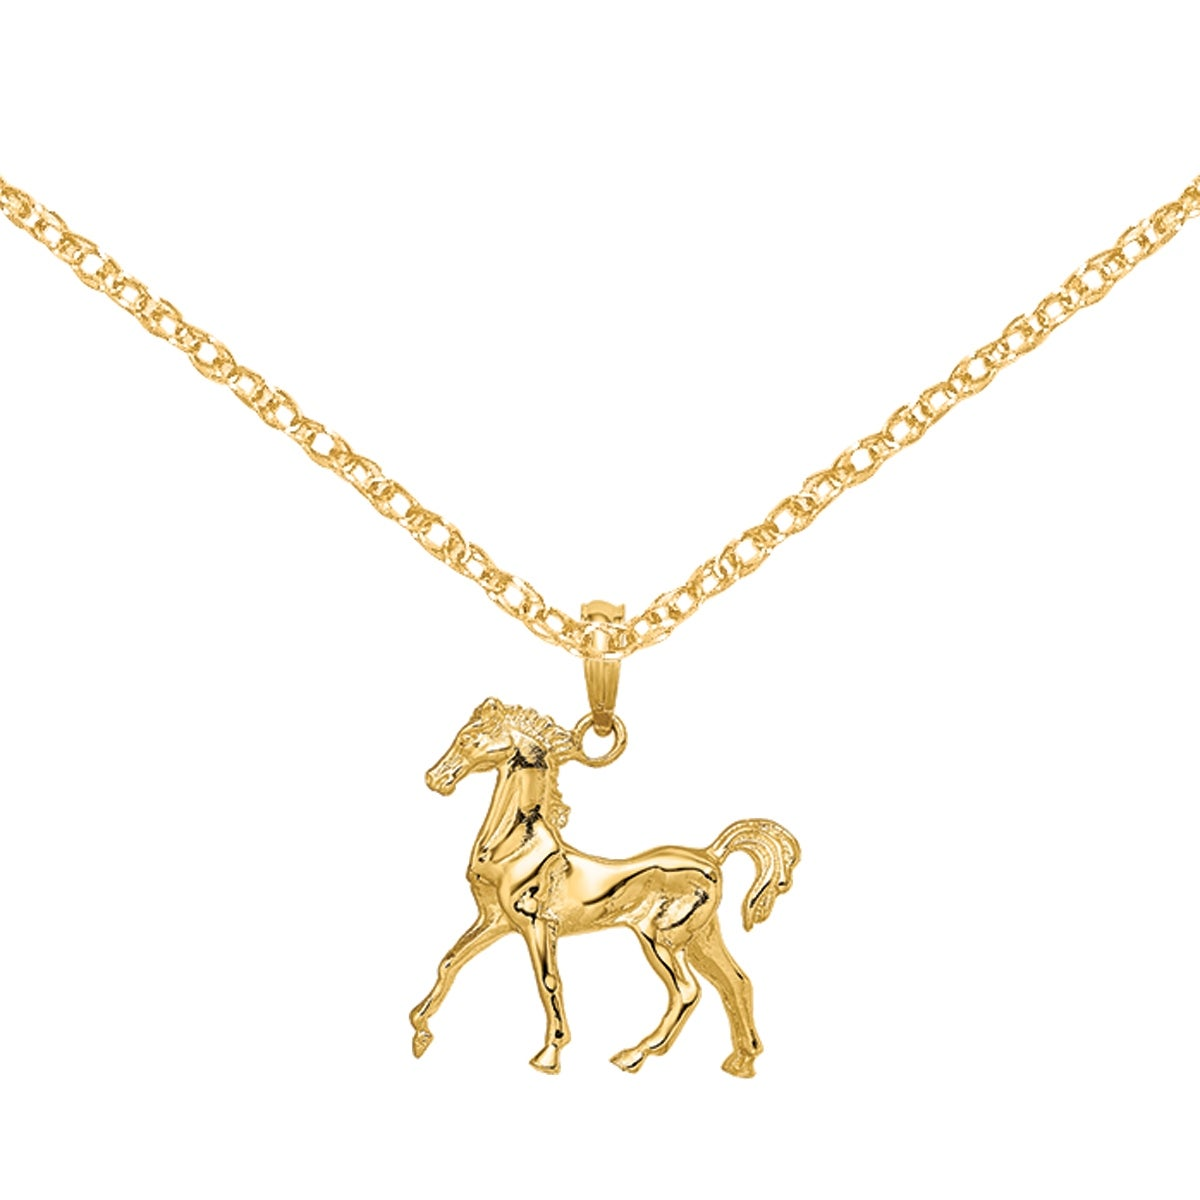 Details about  /14K Yellow Gold 3D Standing Horse Charm Pendant MSRP $409